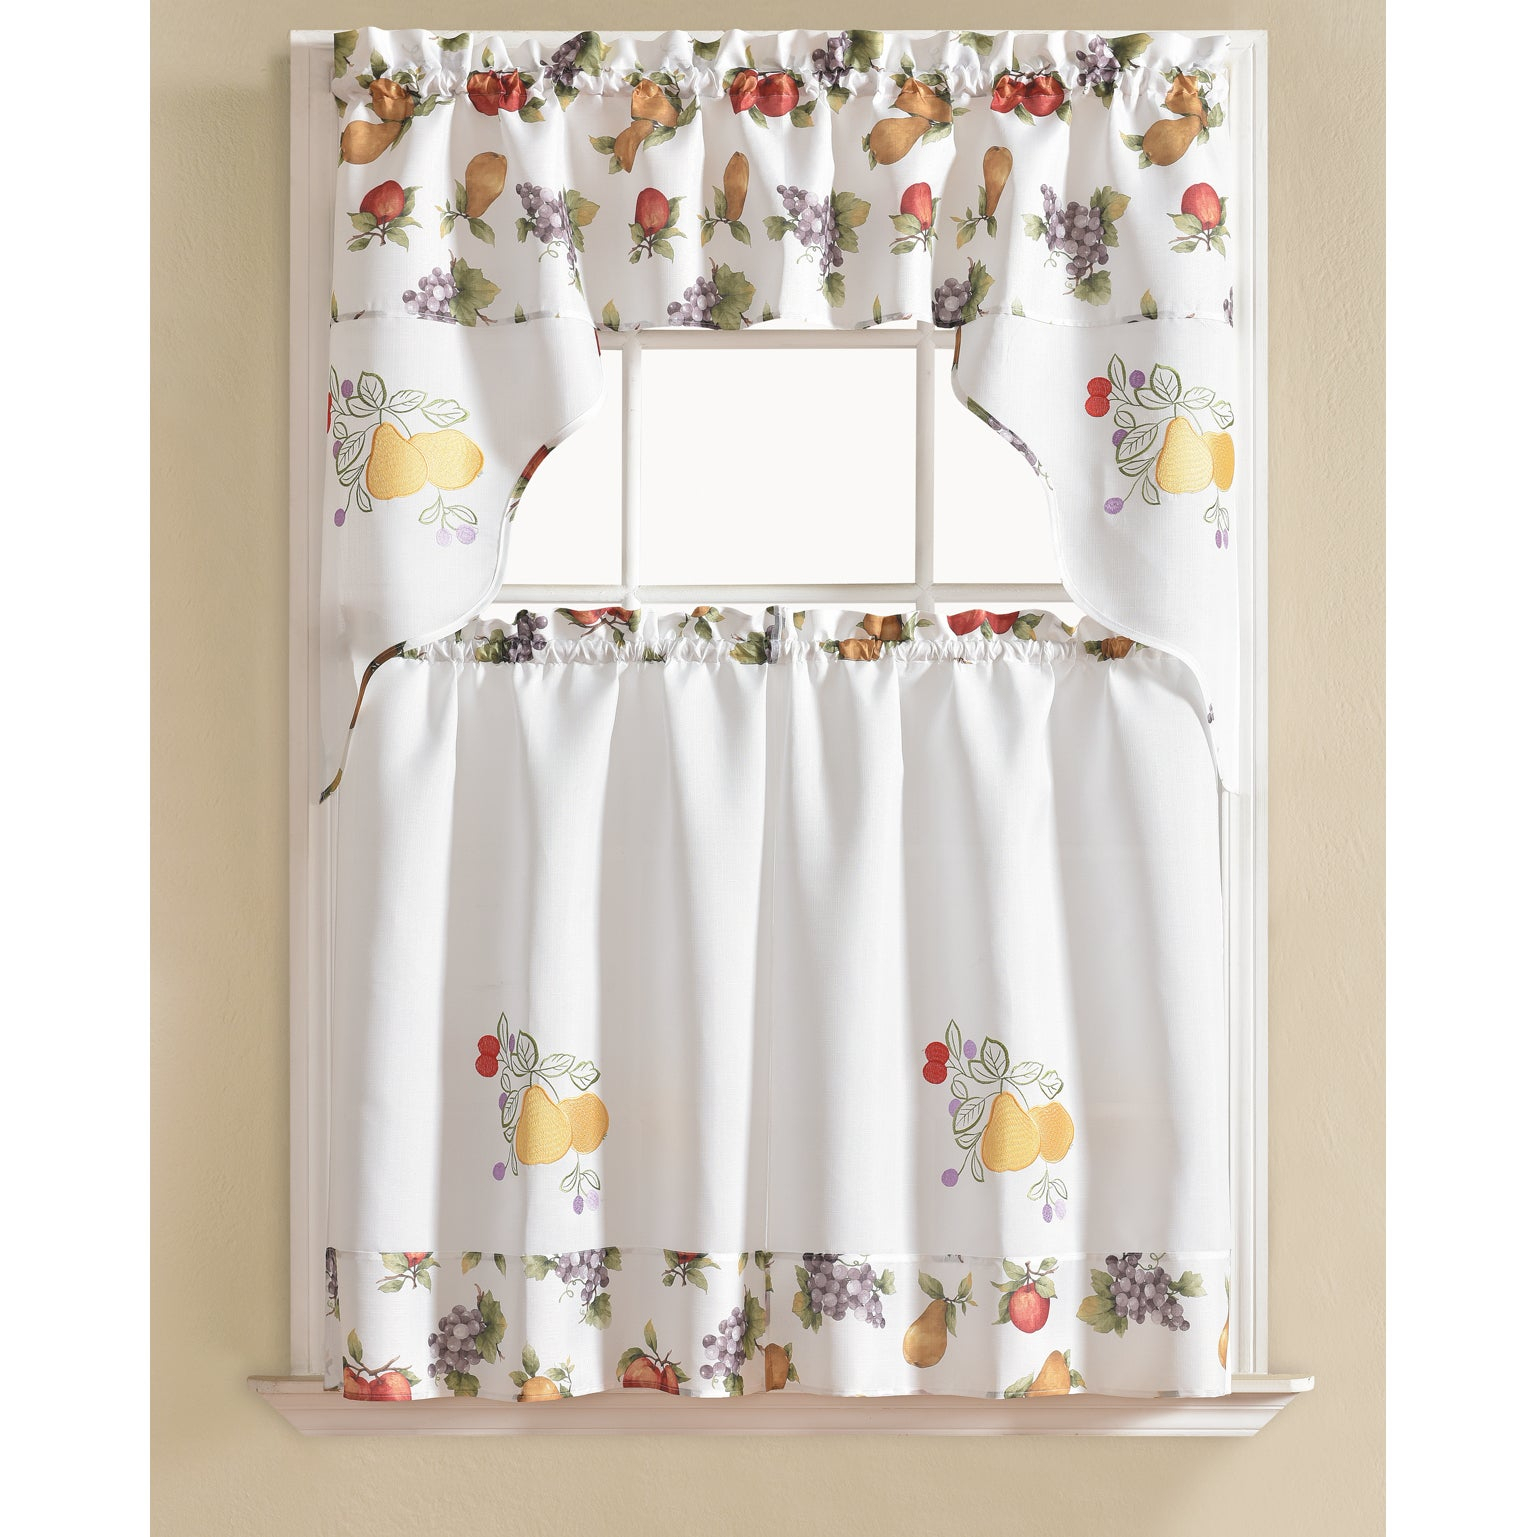 Rt Designers Collection Urban Embroidered Tier And Valance Kitchen Curtain  Tier Set Throughout Lemon Drop Tier And Valance Window Curtain Sets (Photo 16 of 20)